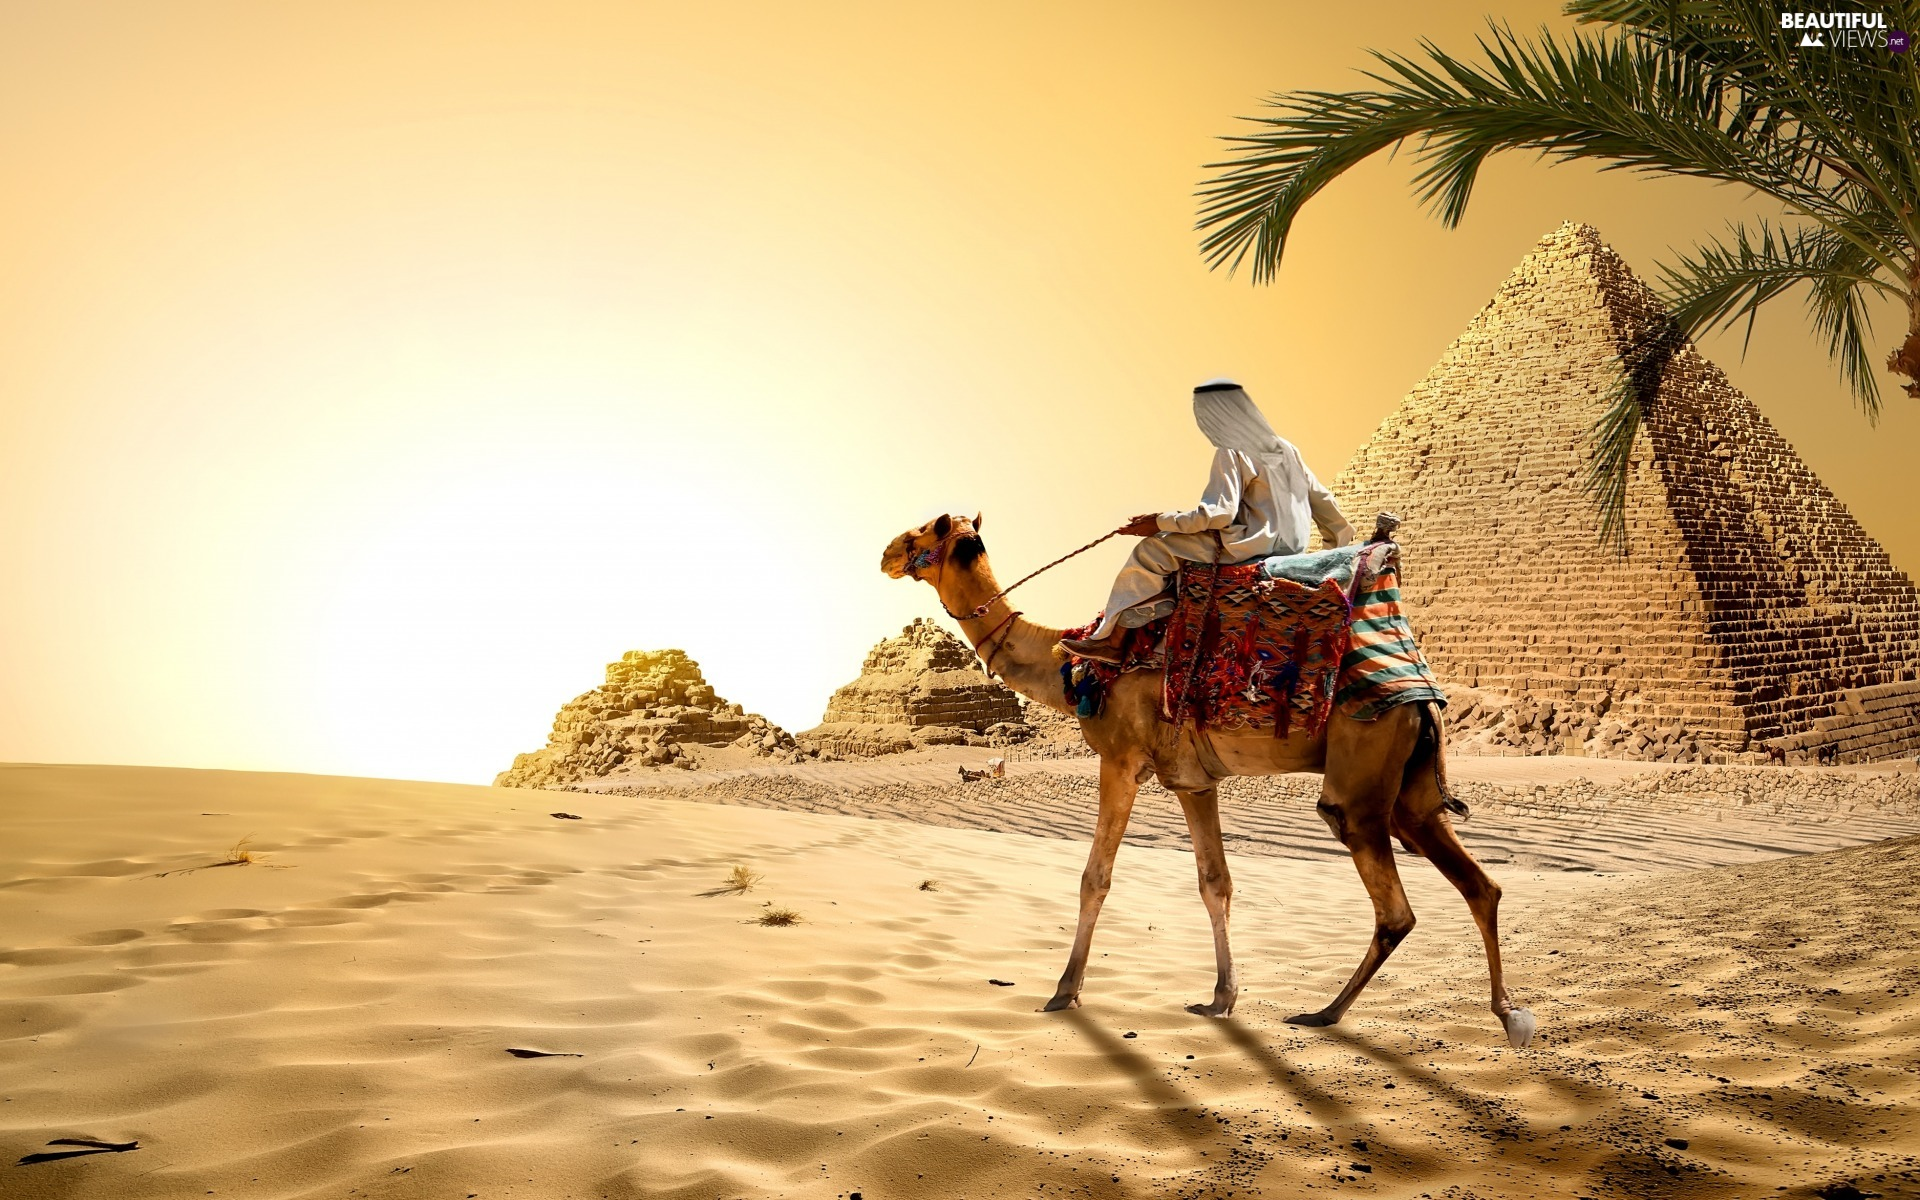 Great Sunsets, Desert, Sand, Egypt, Palm, Camel, Pyramid